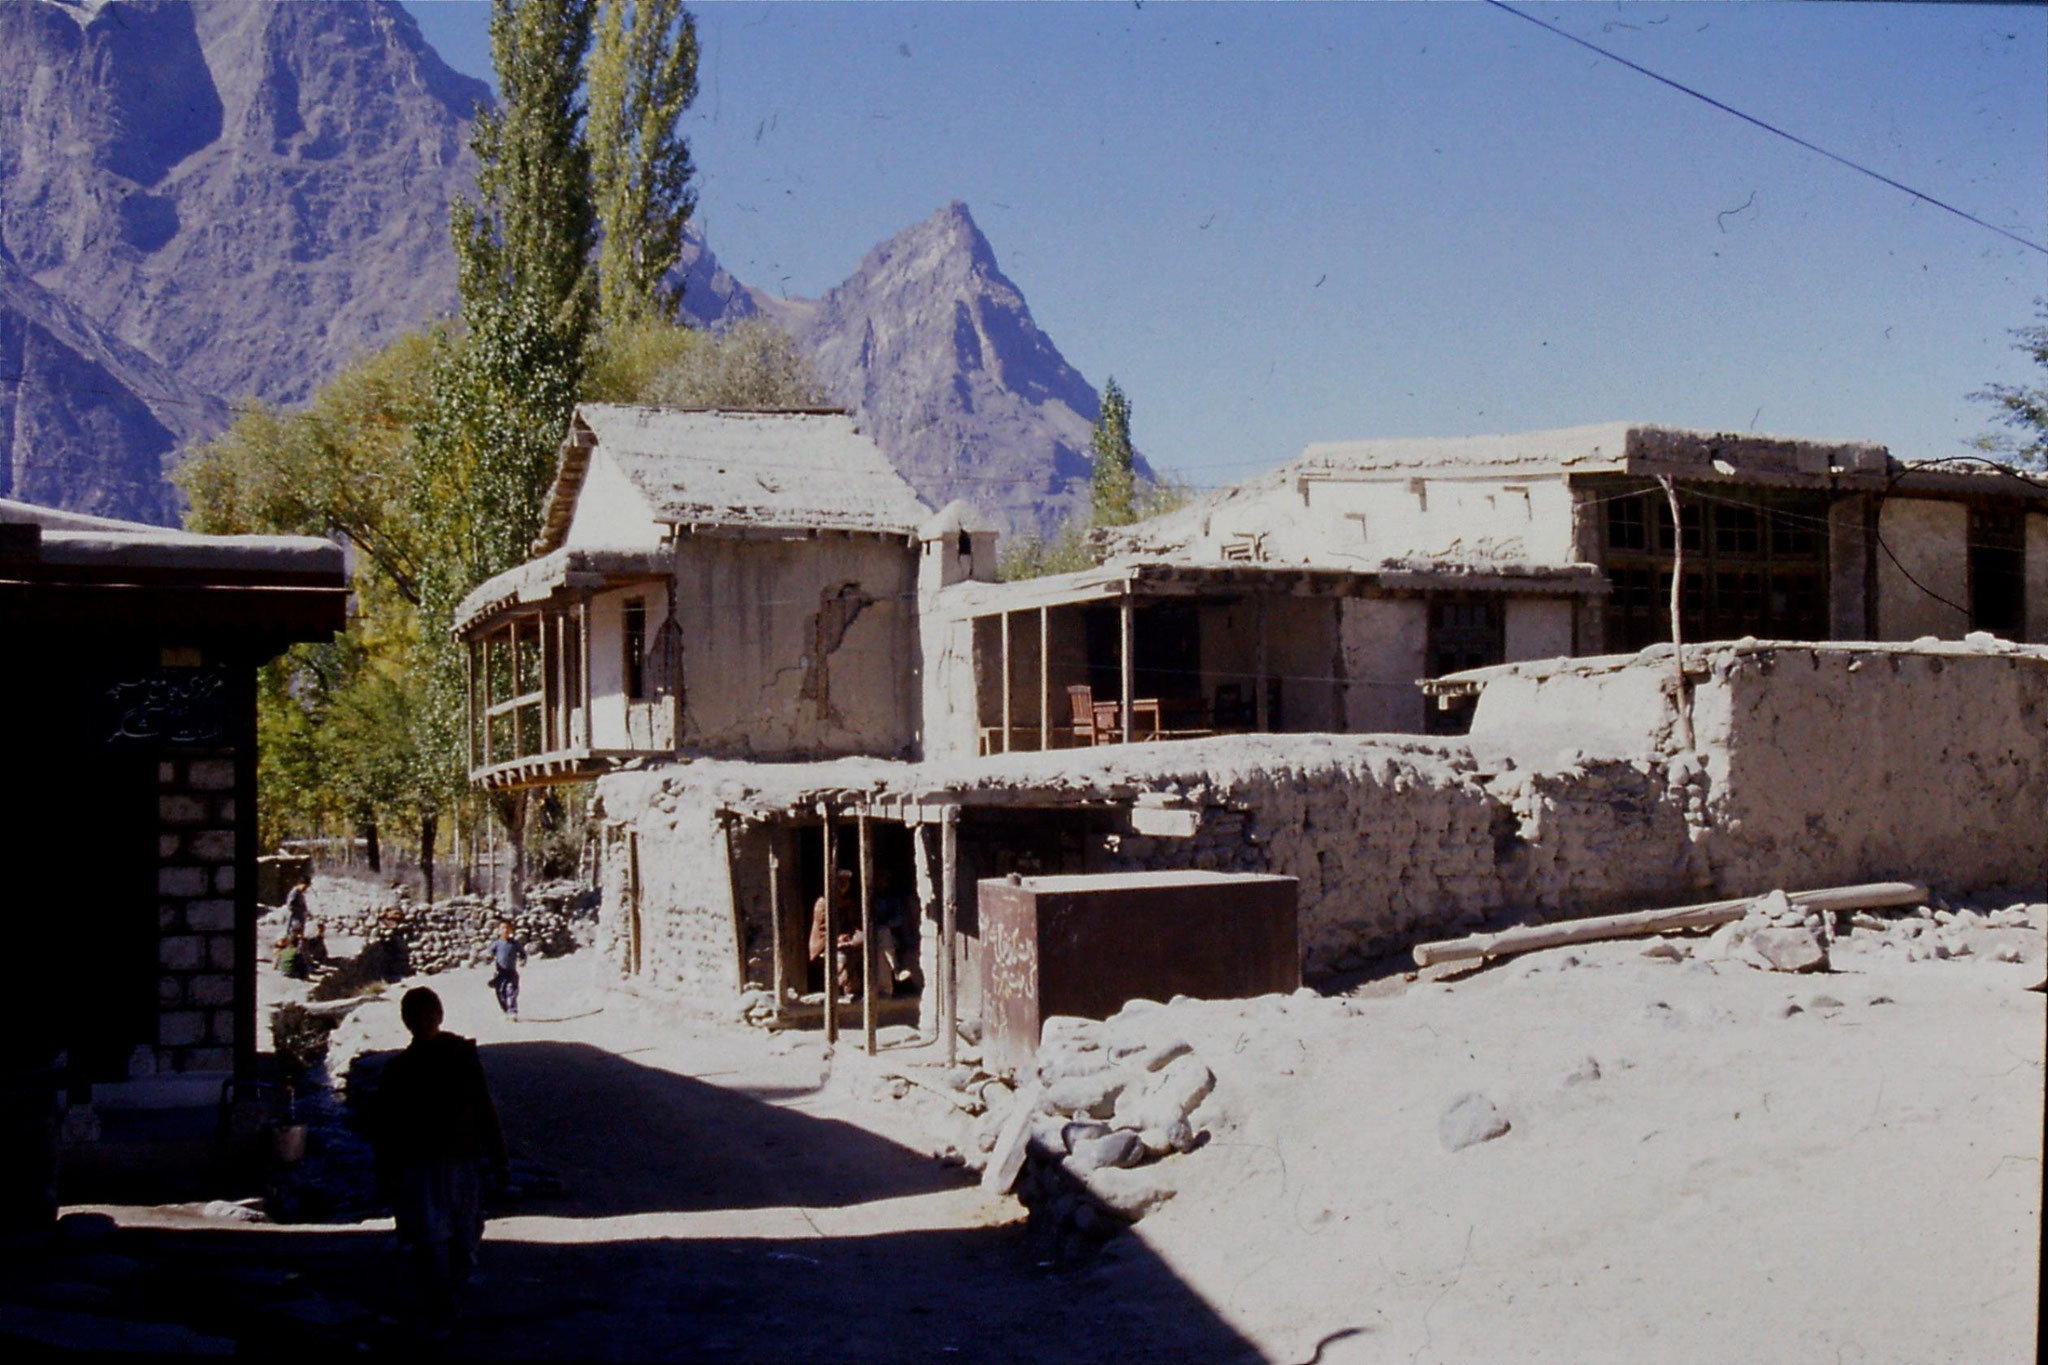 20/10/1989: 11:Houses in Shigar